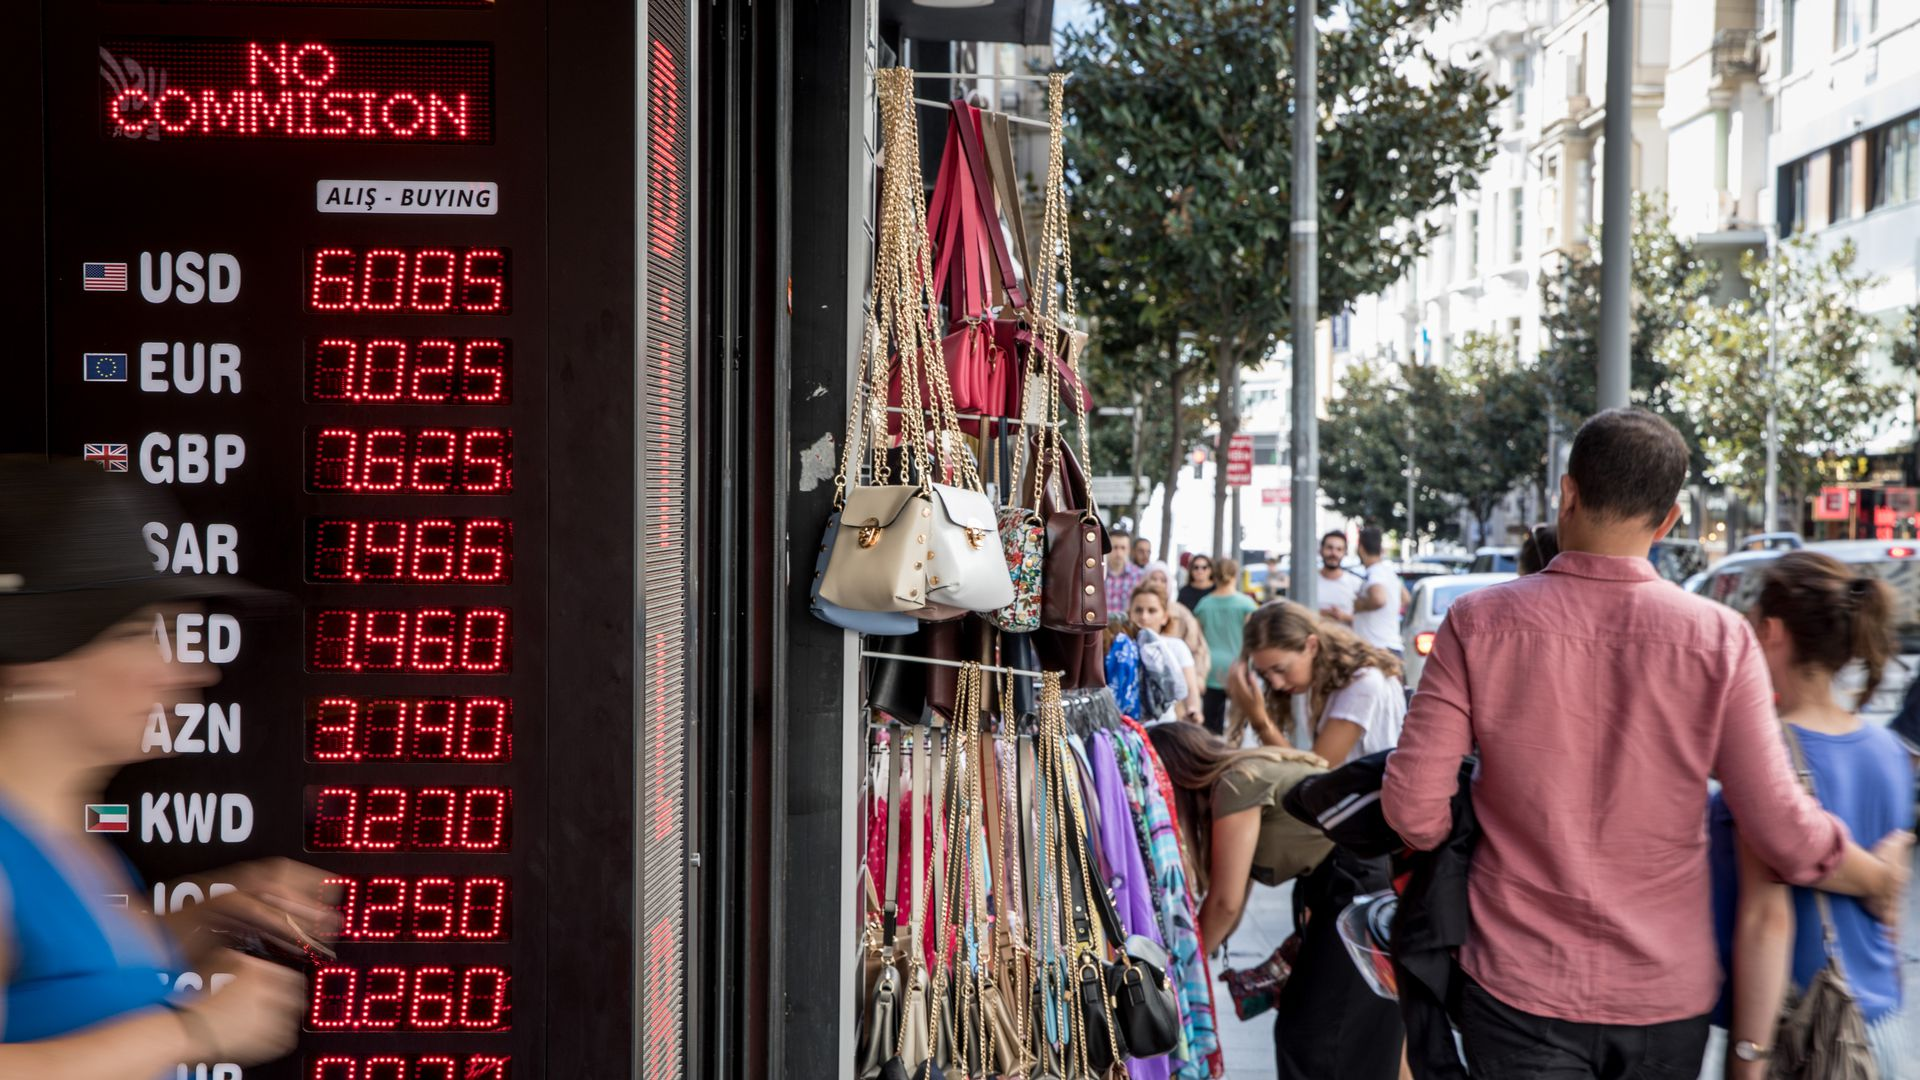 People walk past a currency exchange shop on August 14, 2018 in Istanbul, Turkey.